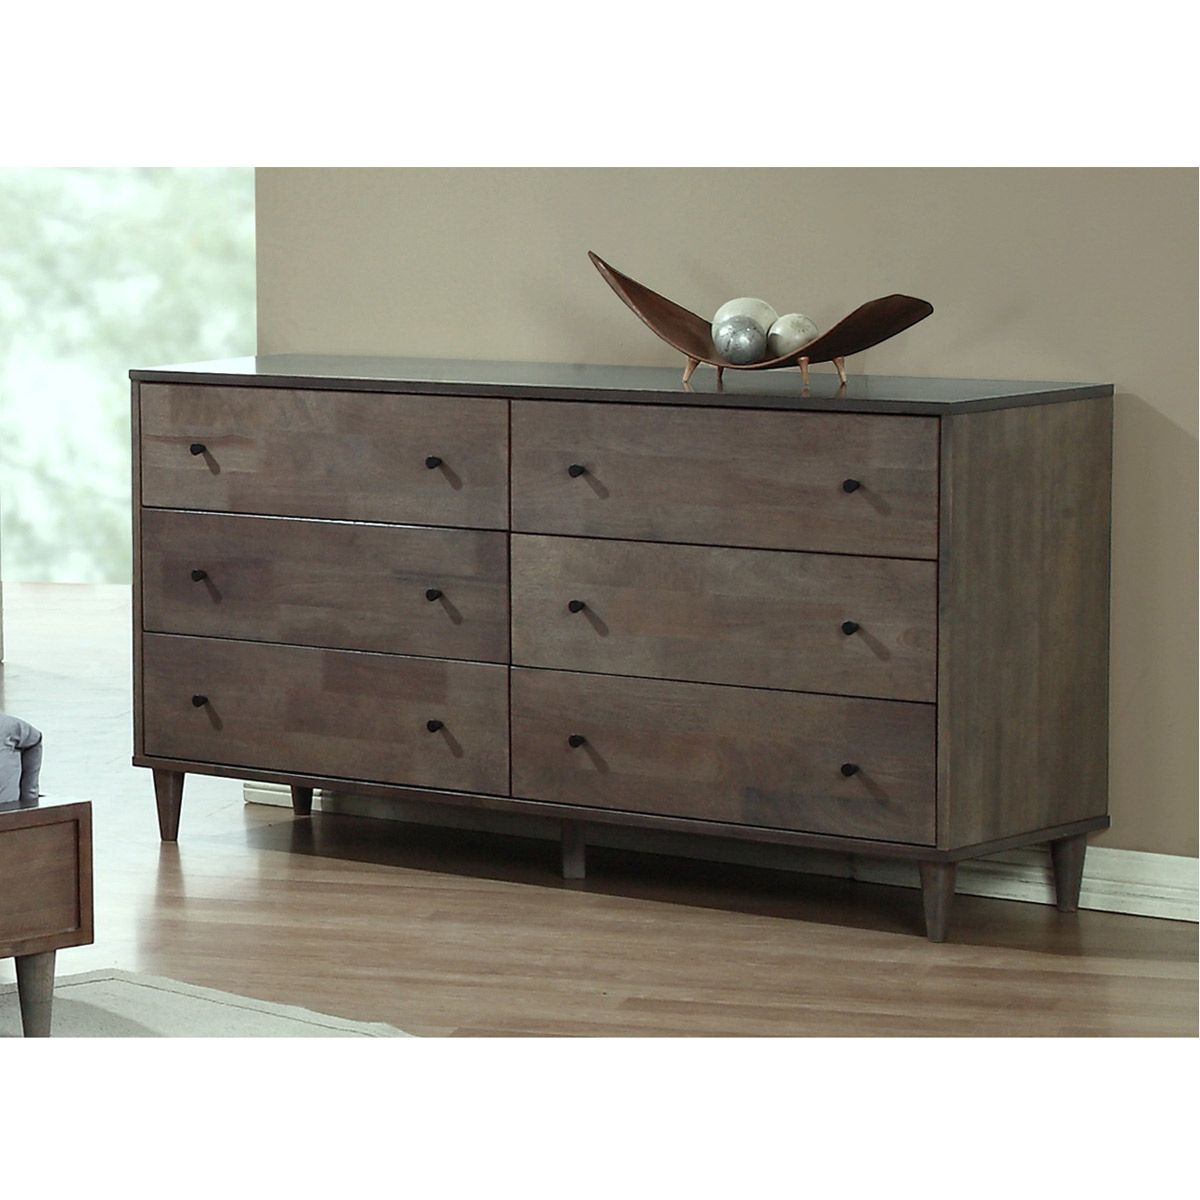 Overstock Com Online Shopping Bedding Furniture Electronics Jewelry Clothing More Storage Furniture Bedroom 6 Drawer Dresser Dresser Drawers [ 1200 x 1200 Pixel ]